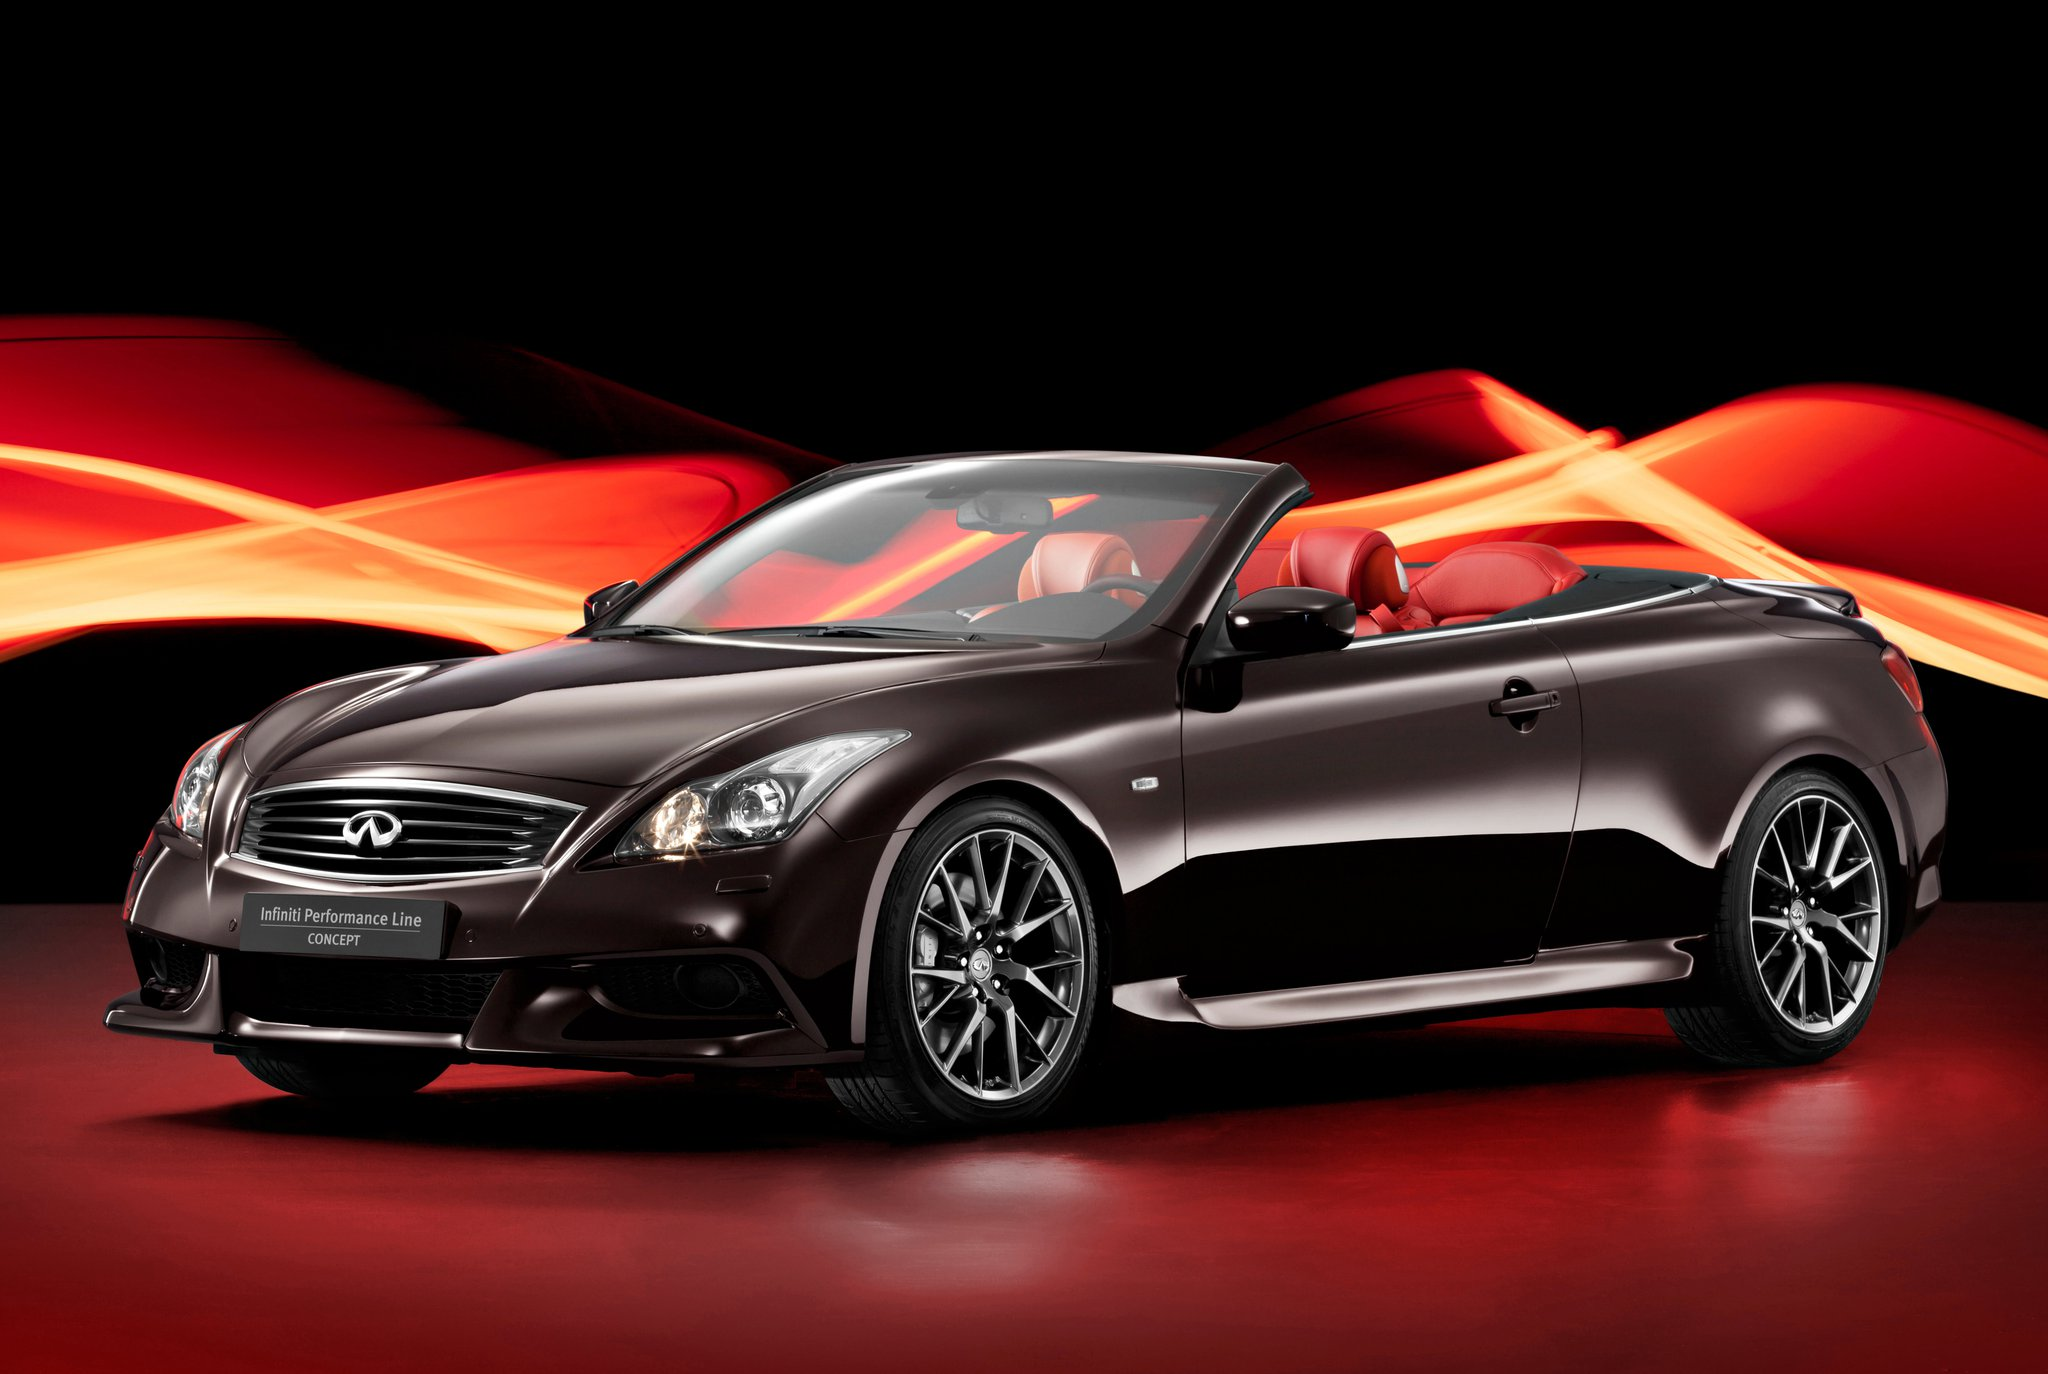 side infiniti view base review convertible infinity luxury news